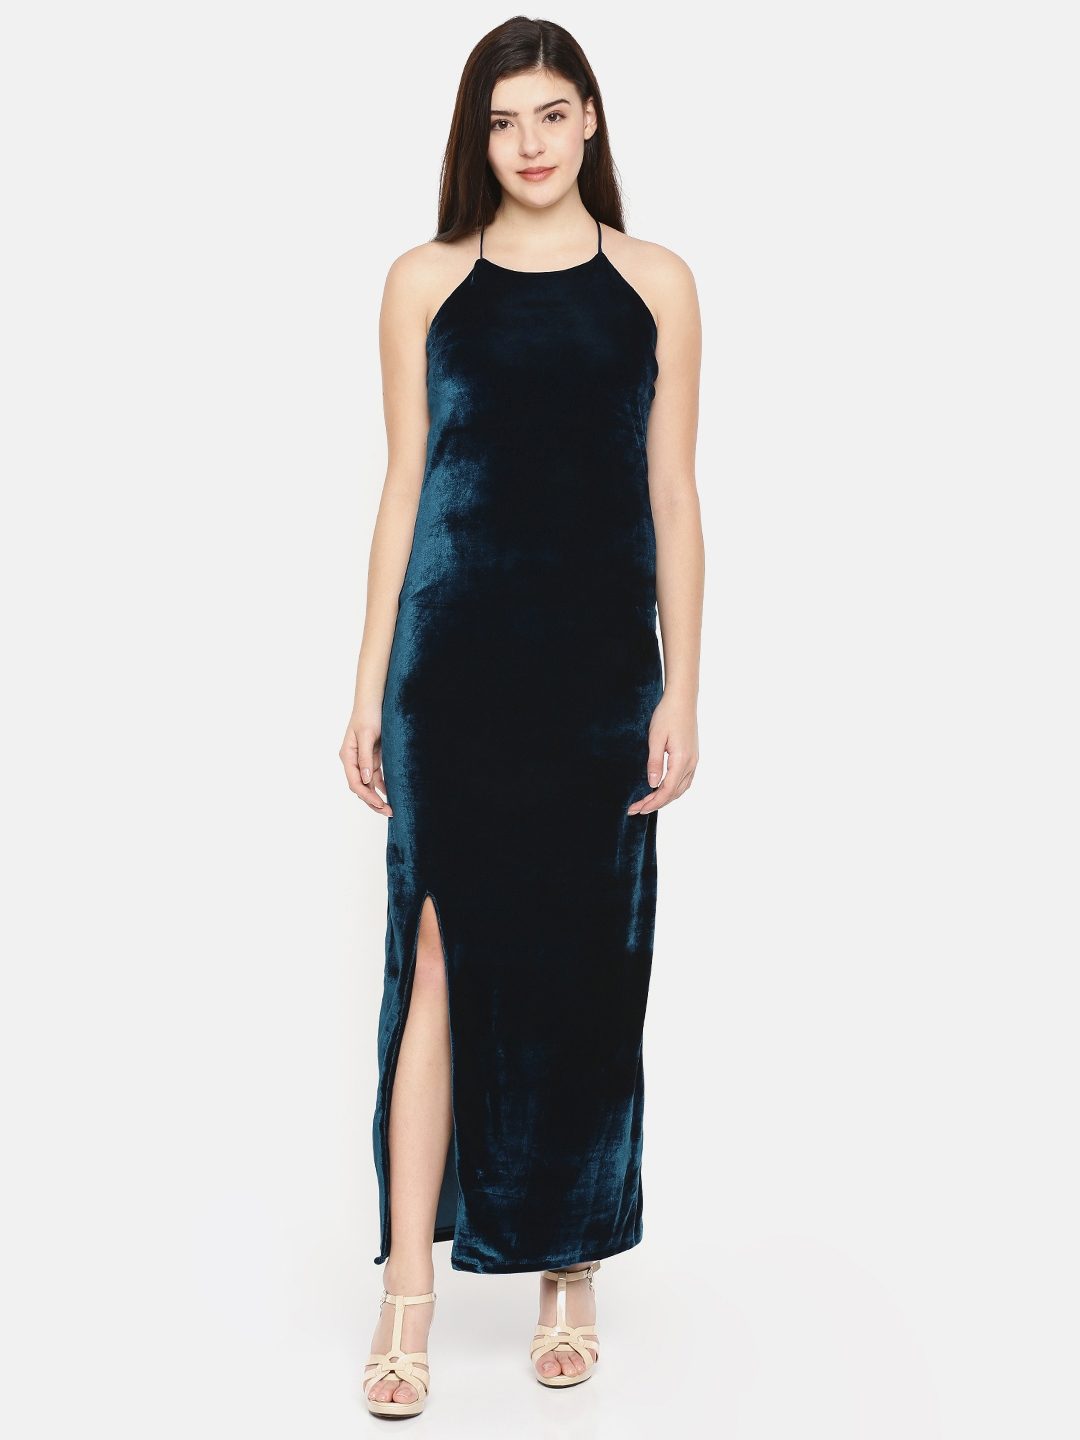 7f3fd194db53 Buy CODE By Lifestyle Women Teal Blue Solid Velvet Maxi Dress ...